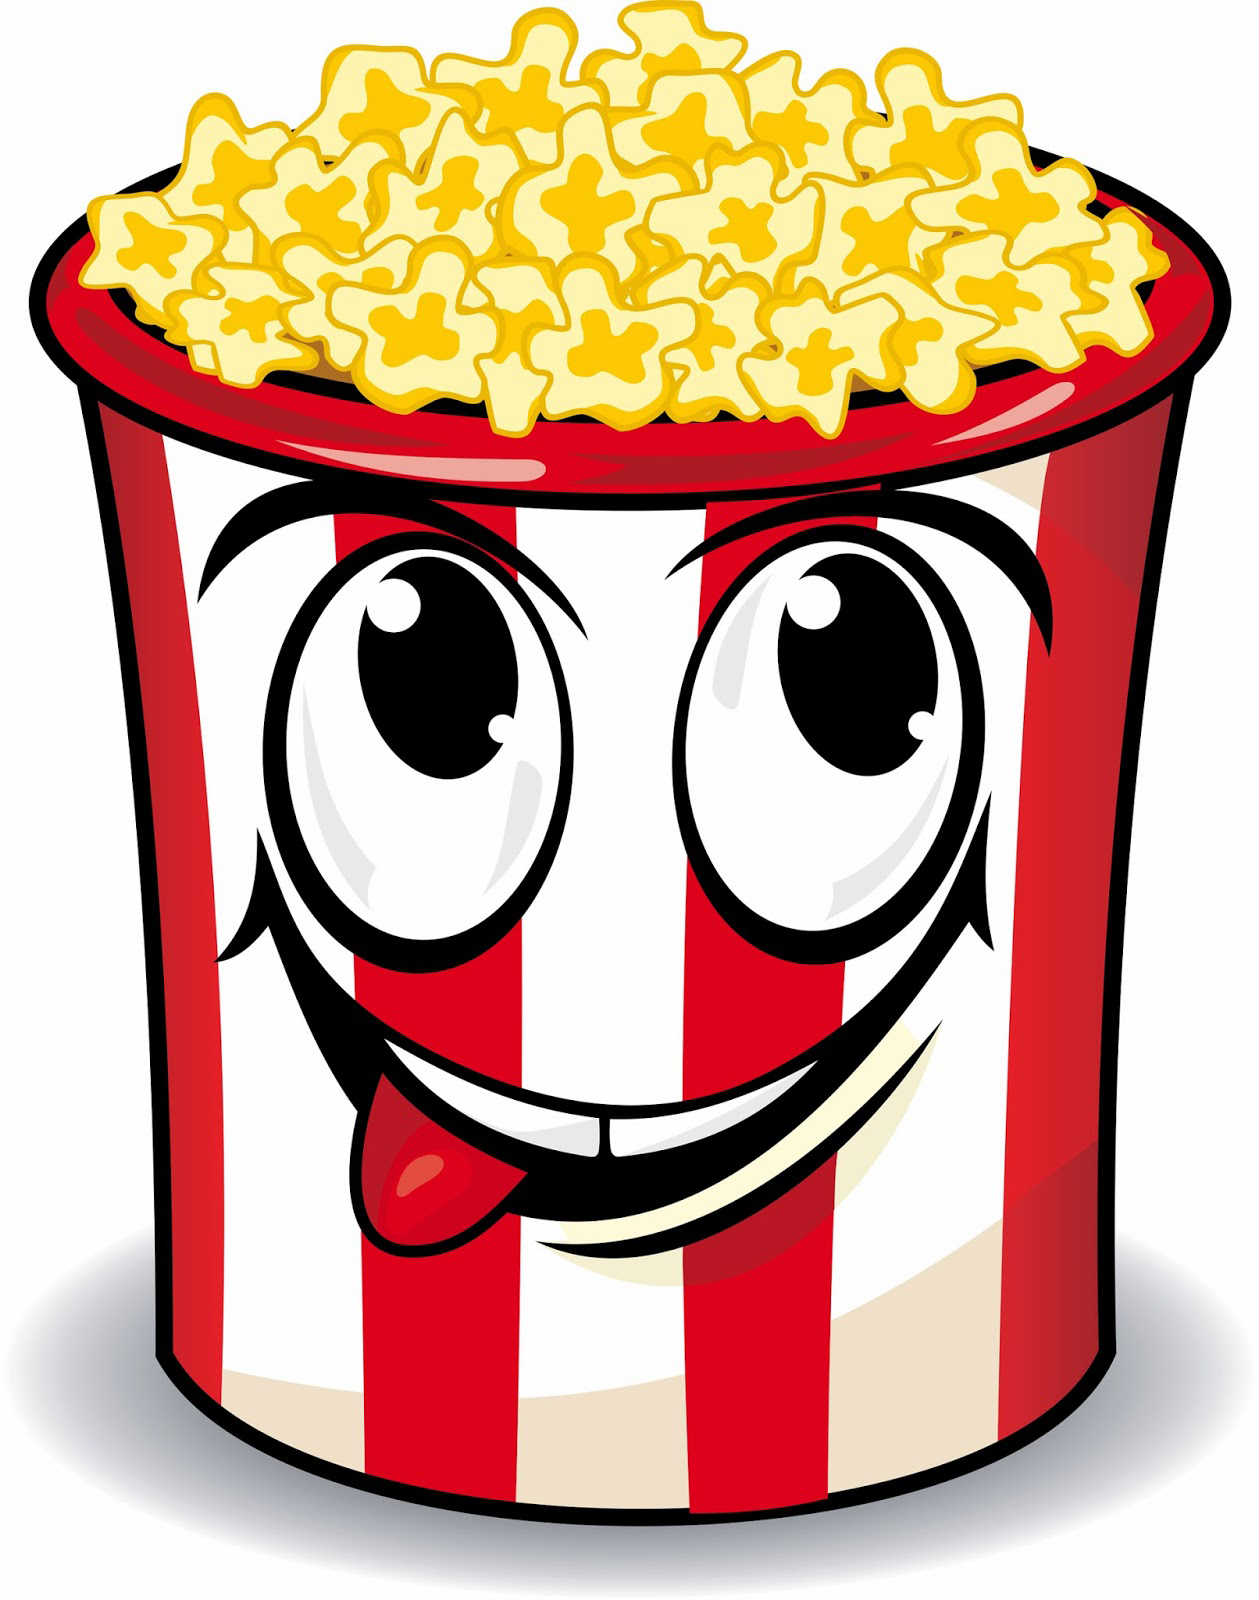 Microwave popcorn clipart.